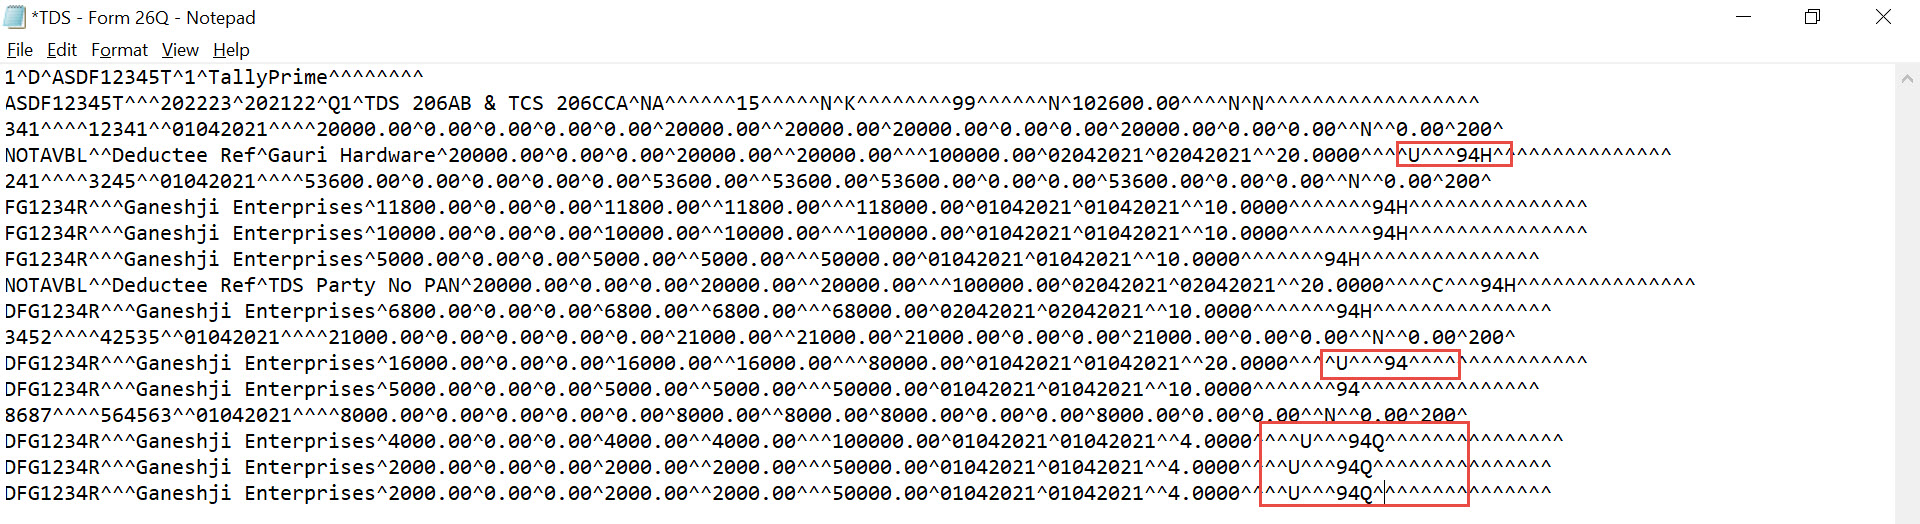 After Removing 0000 from the Row in the Text File.